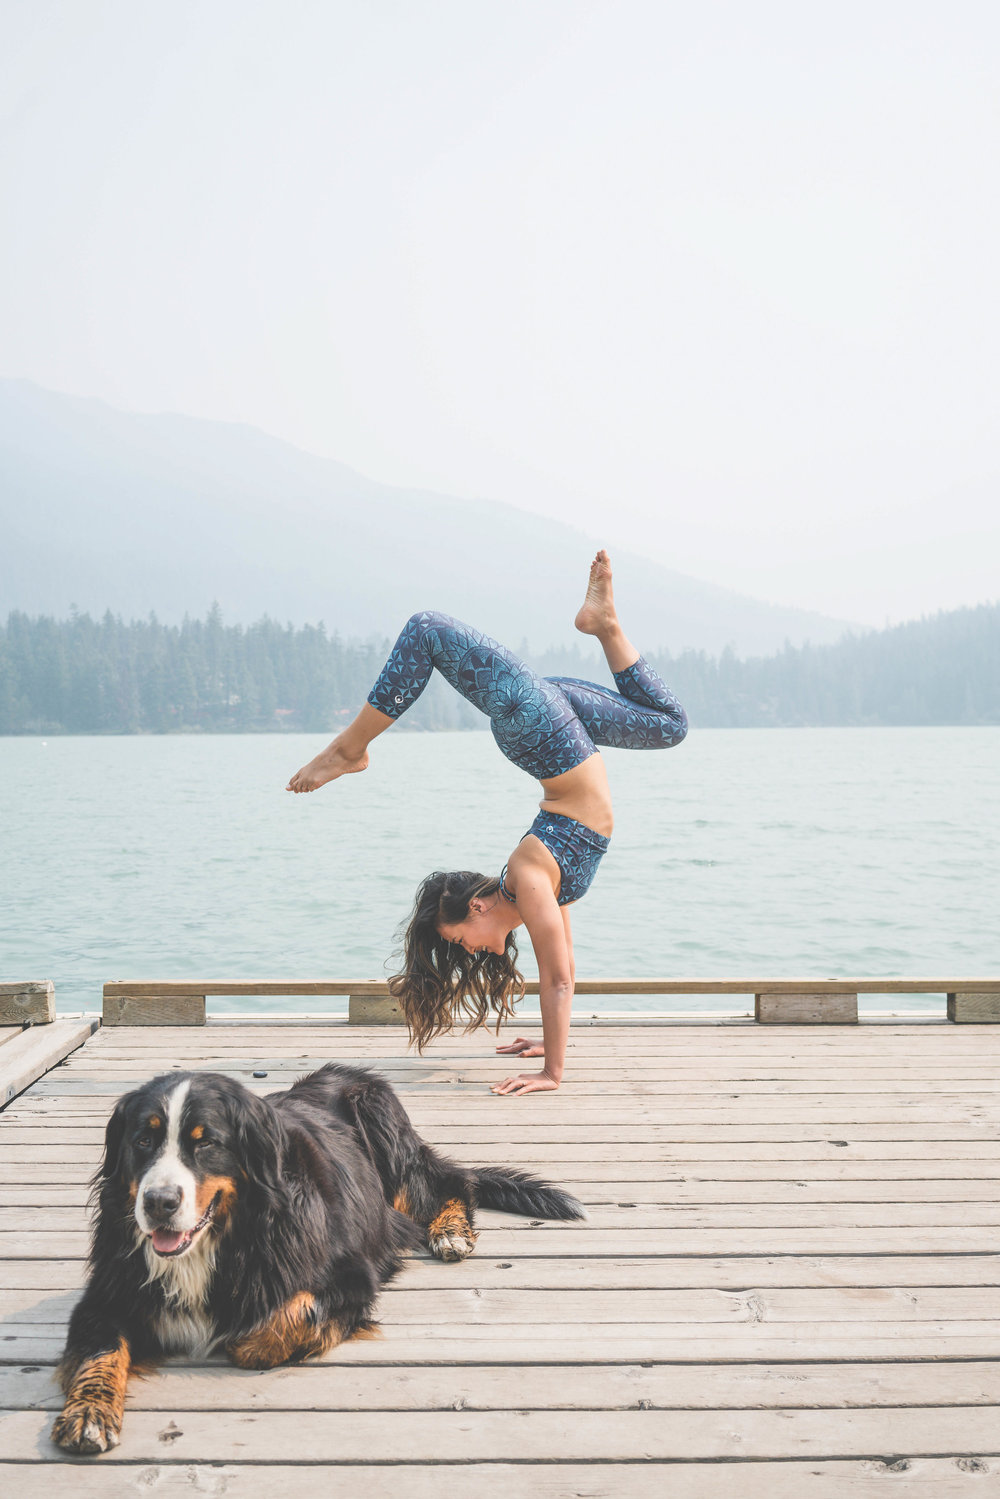 Inner Fire x Cam Lee Yoga x Fitness Model x Vancouver x Whistler x Puppy x Andi Wardrop x Handstand